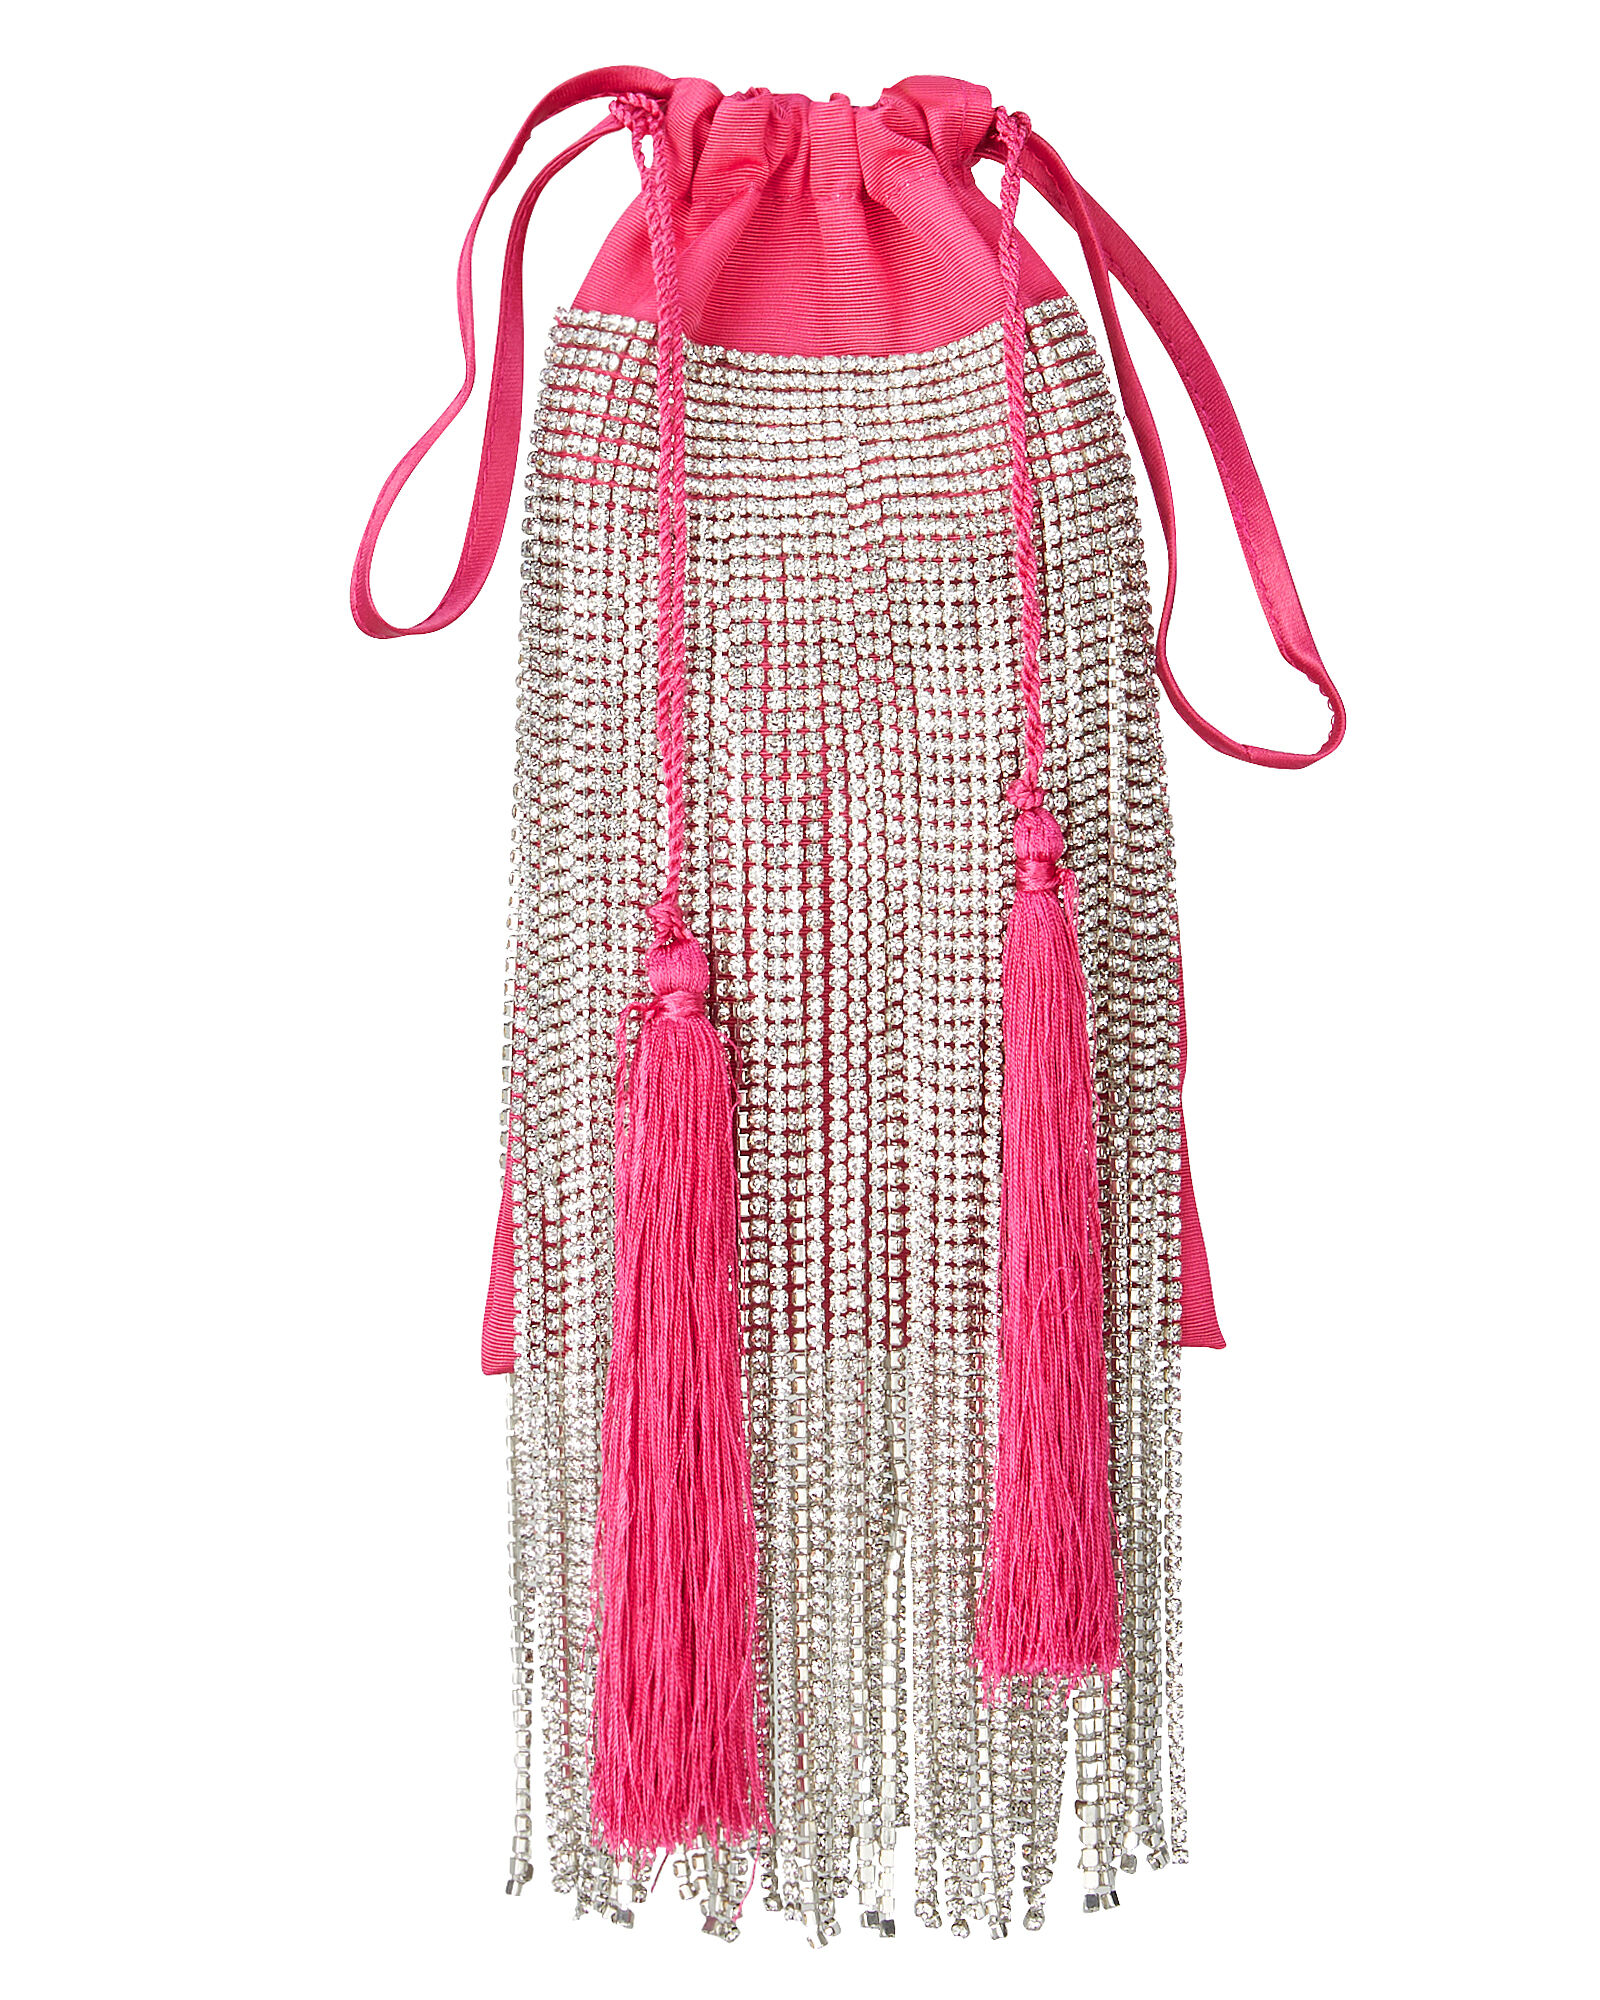 Hot Pink Crystal Fringe Clutch, PINK, hi-res